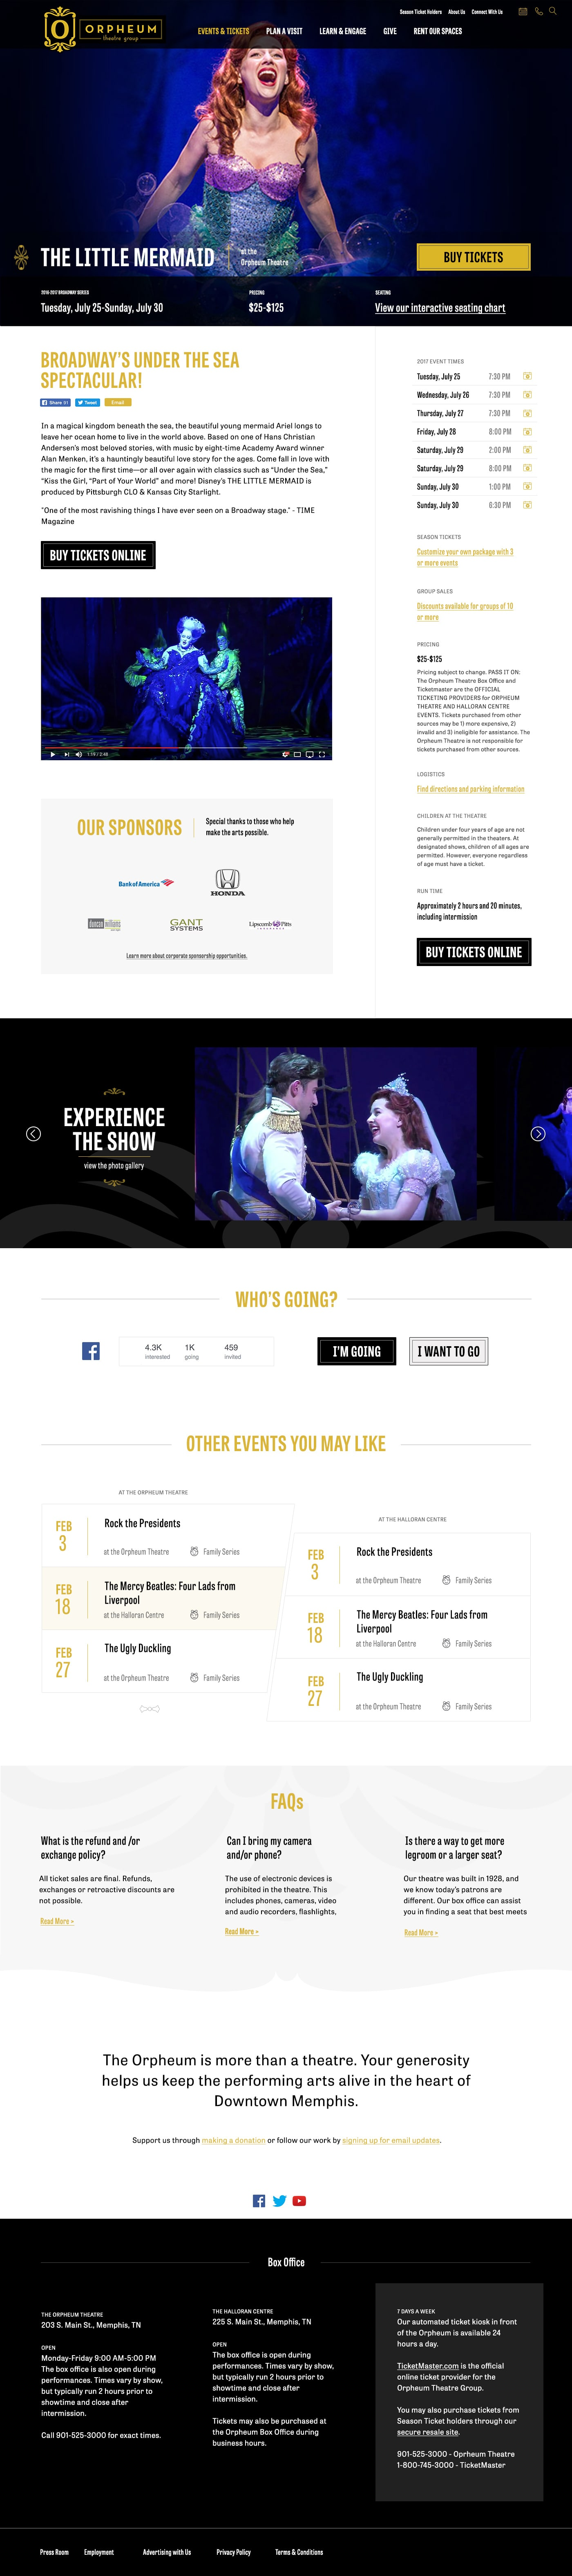 Event page design for Orpheum Theatre